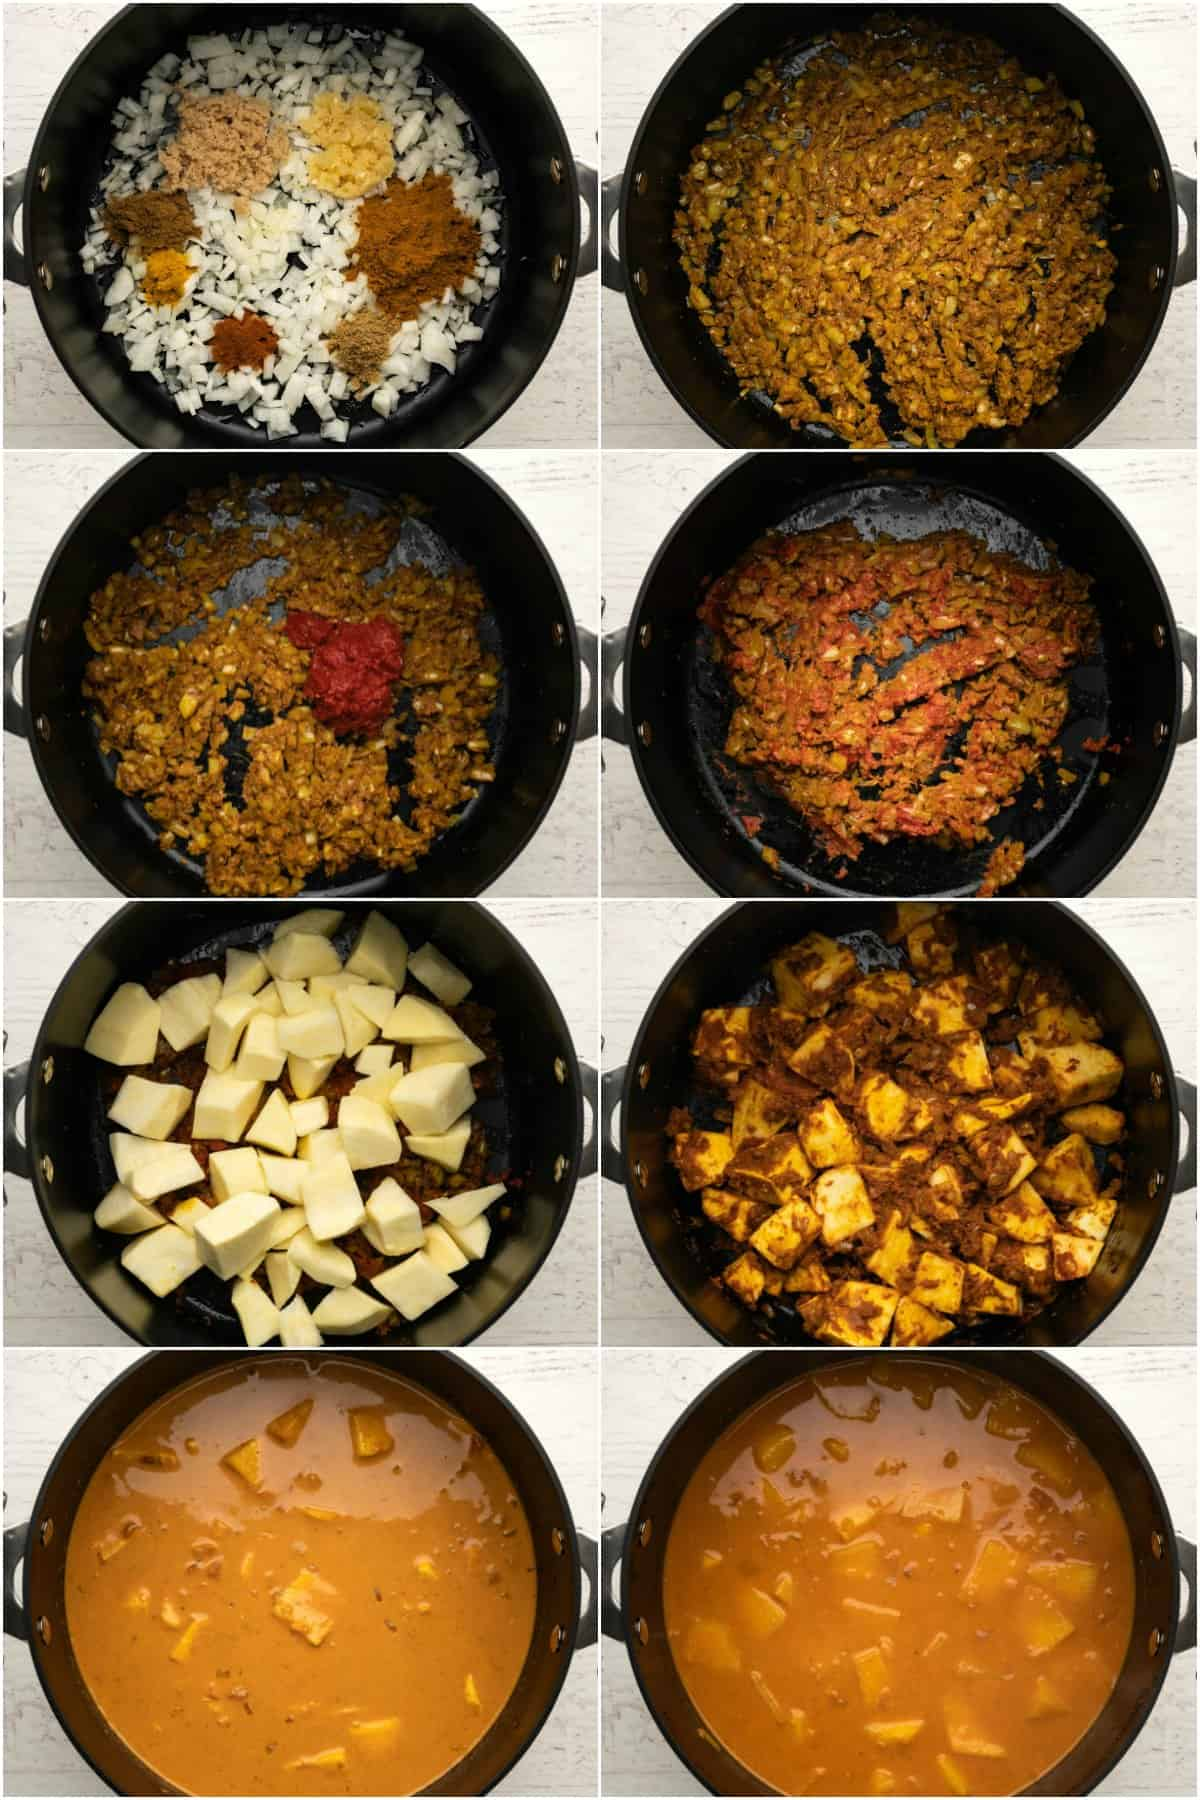 Step by step process photo collage of making a vegetable curry.